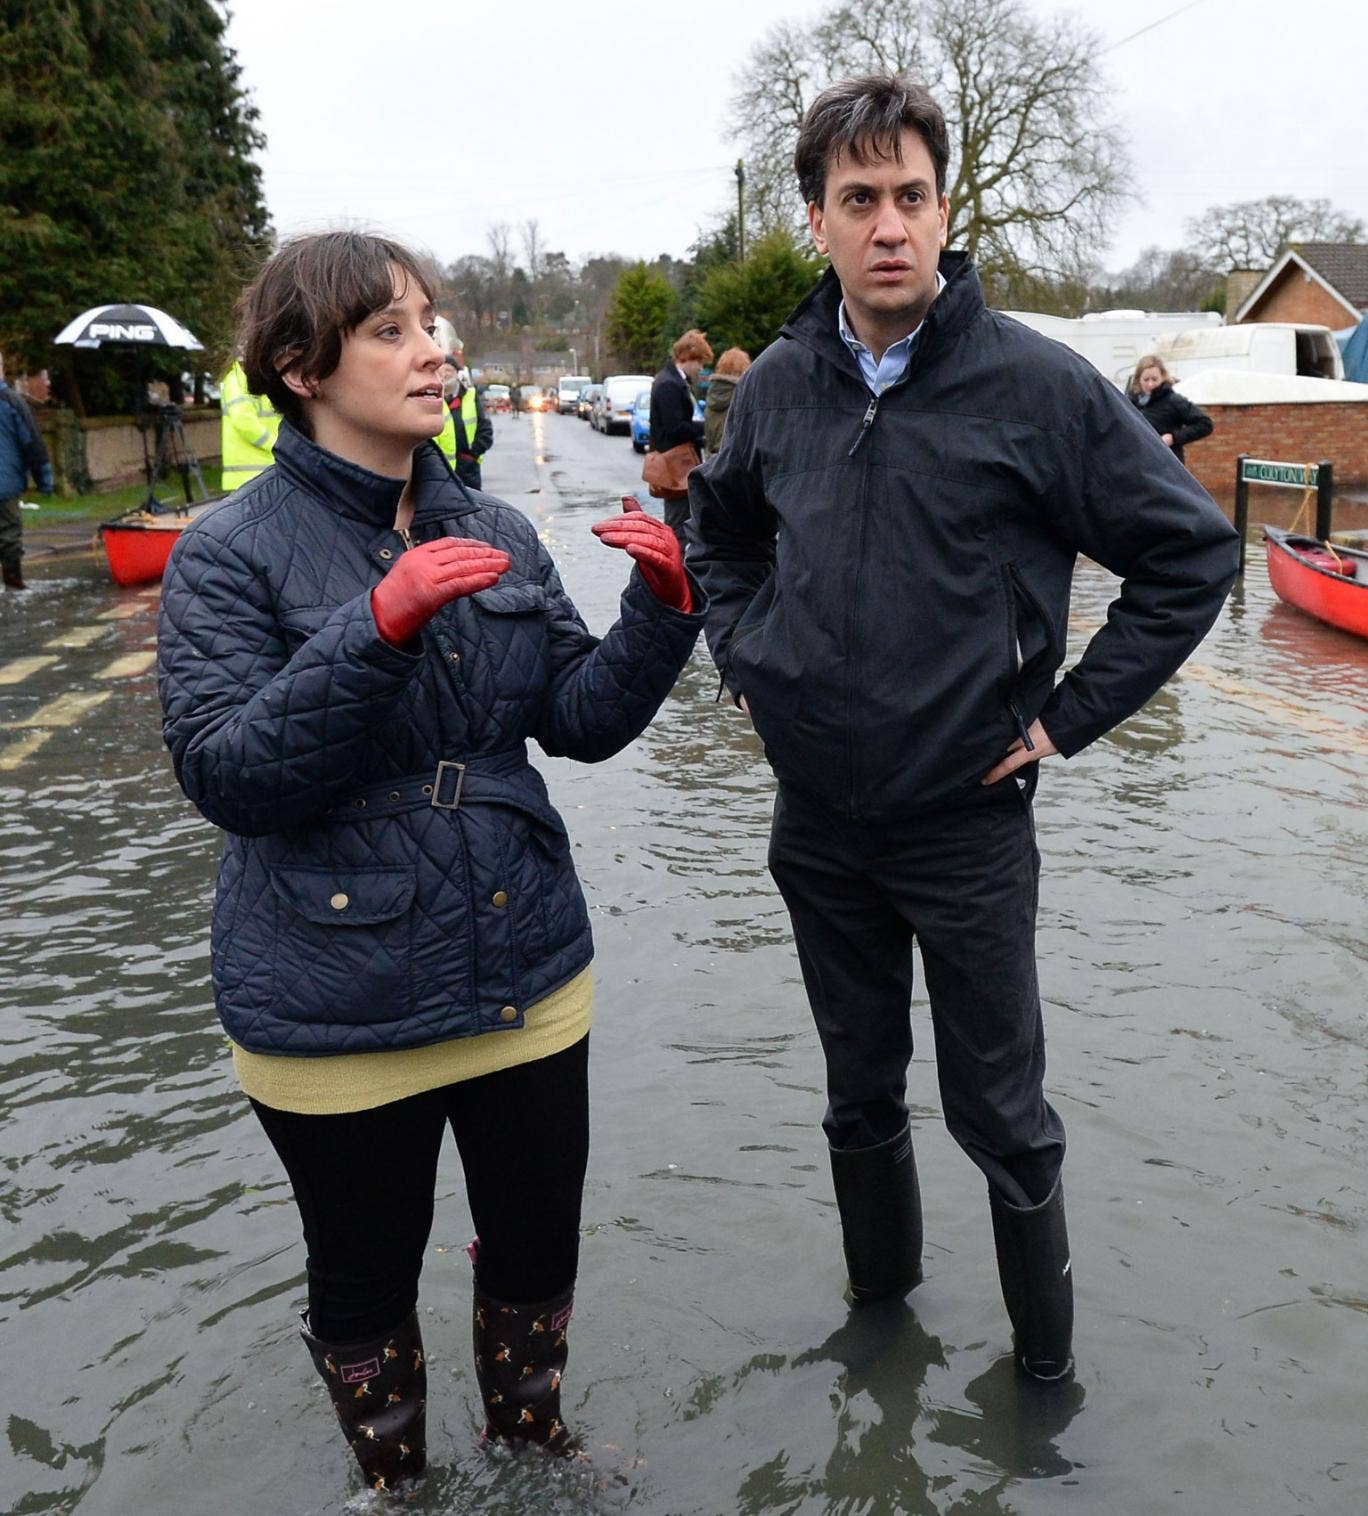 The Labour leader Ed Miliband admitted it was 'a difficult decision for politicians whether to visit areas like this'